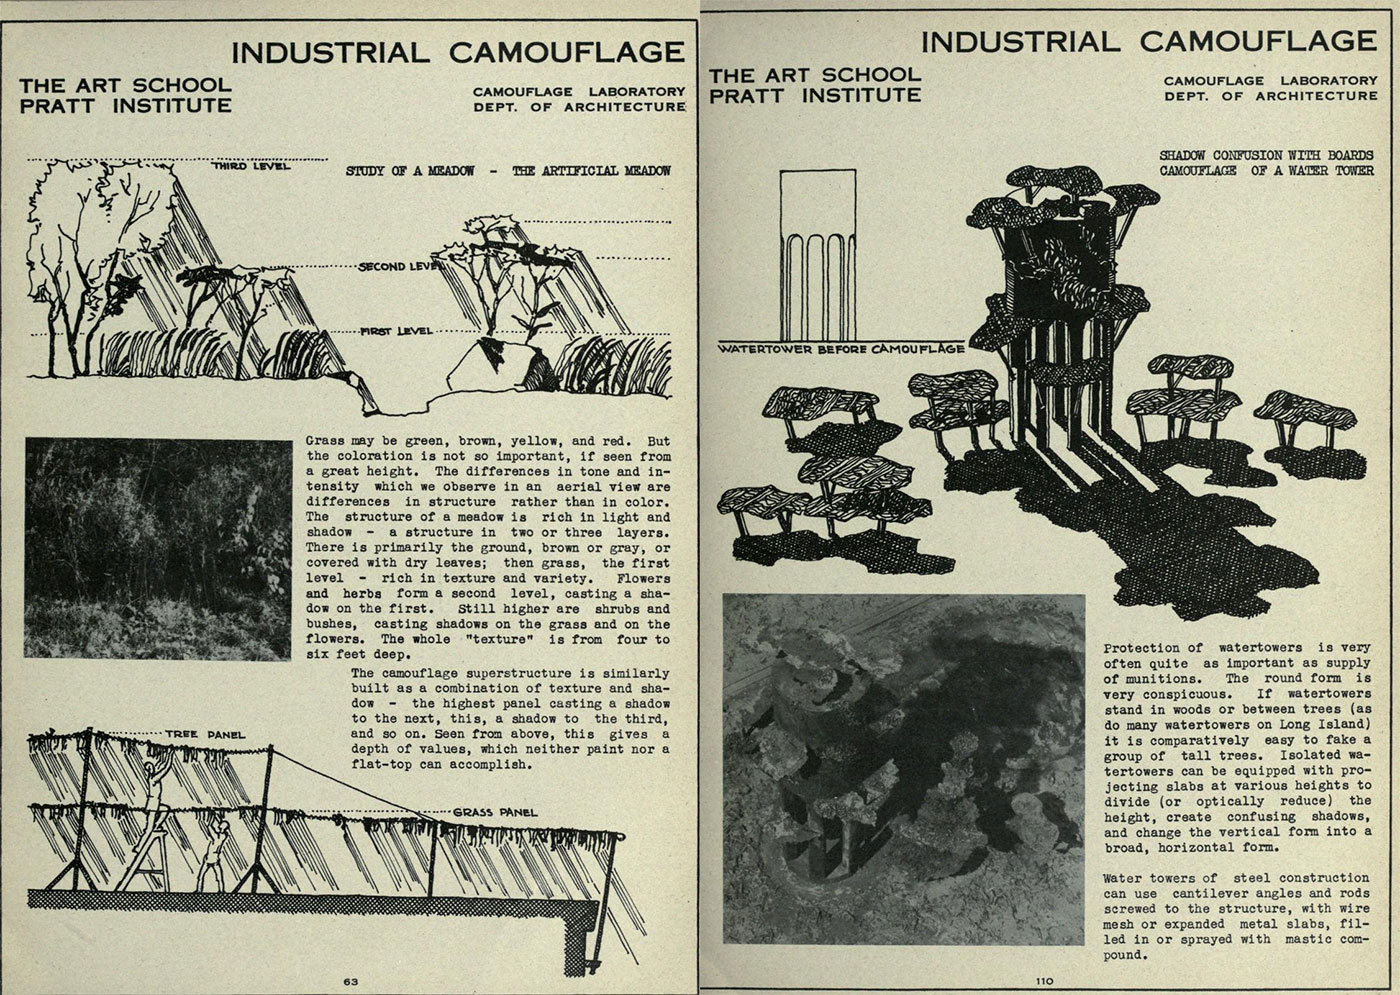 Creating an artificial meadow for camouflage; Hiding a water tower with fake trees, from the Industrial Camouflage Manual published in 1942 by Pratt Institute (via Internet Archive)